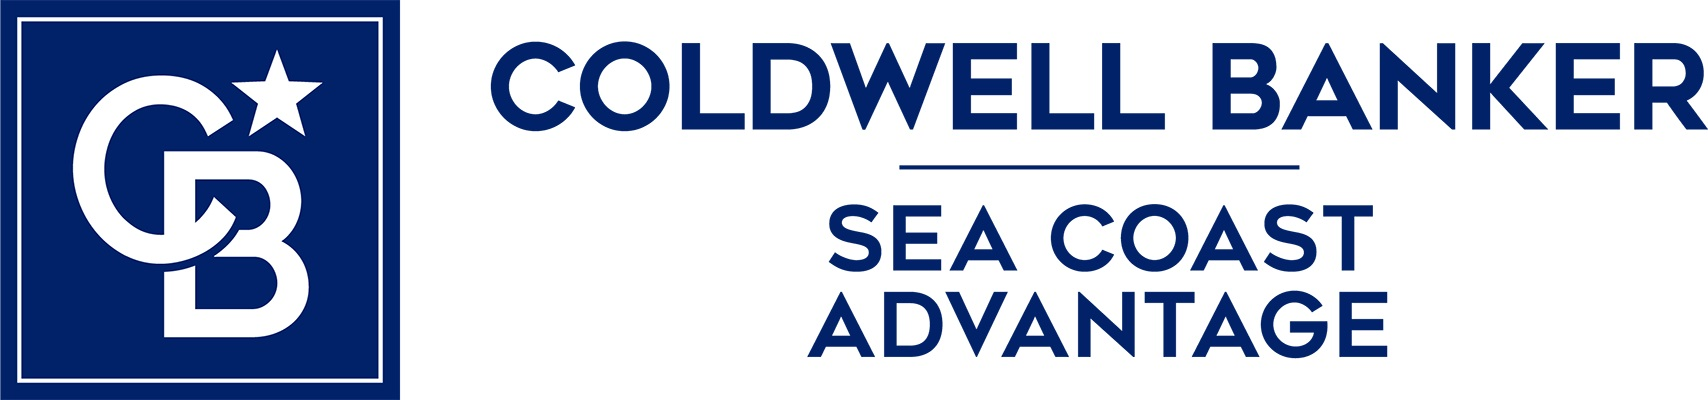 Ken Brandon - Coldwell Banker Sea Coast Advantage Realty